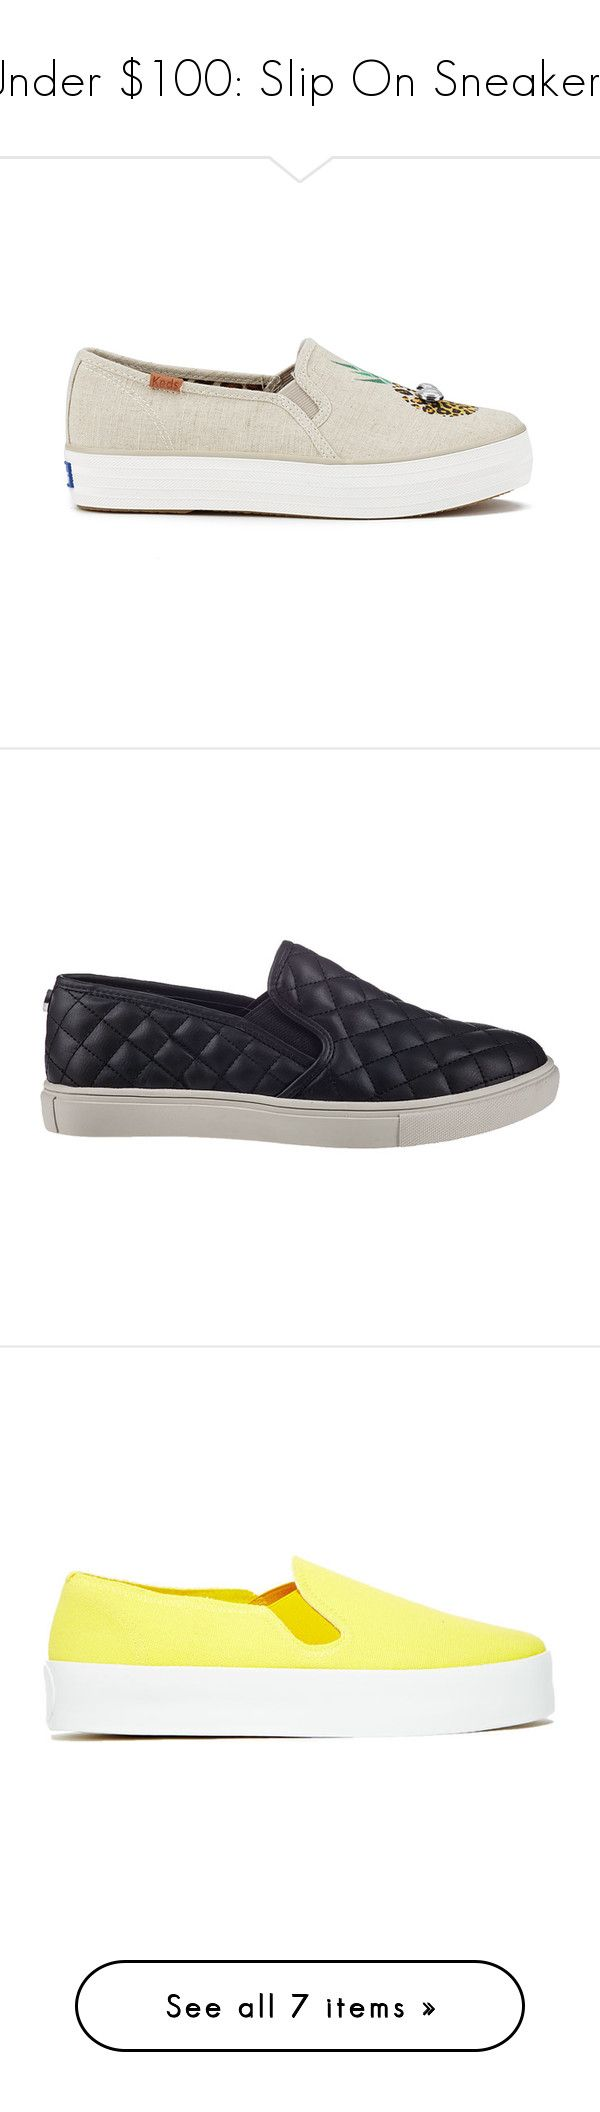 """""""Under $100: Slip On Sneakers"""" by polyvore-editorial ❤ liked on Polyvore featuring under100, sliponsneakers, Keds, Steve Madden, Vans, Our Family, Opening Ceremony, shoes, sneakers and beige"""